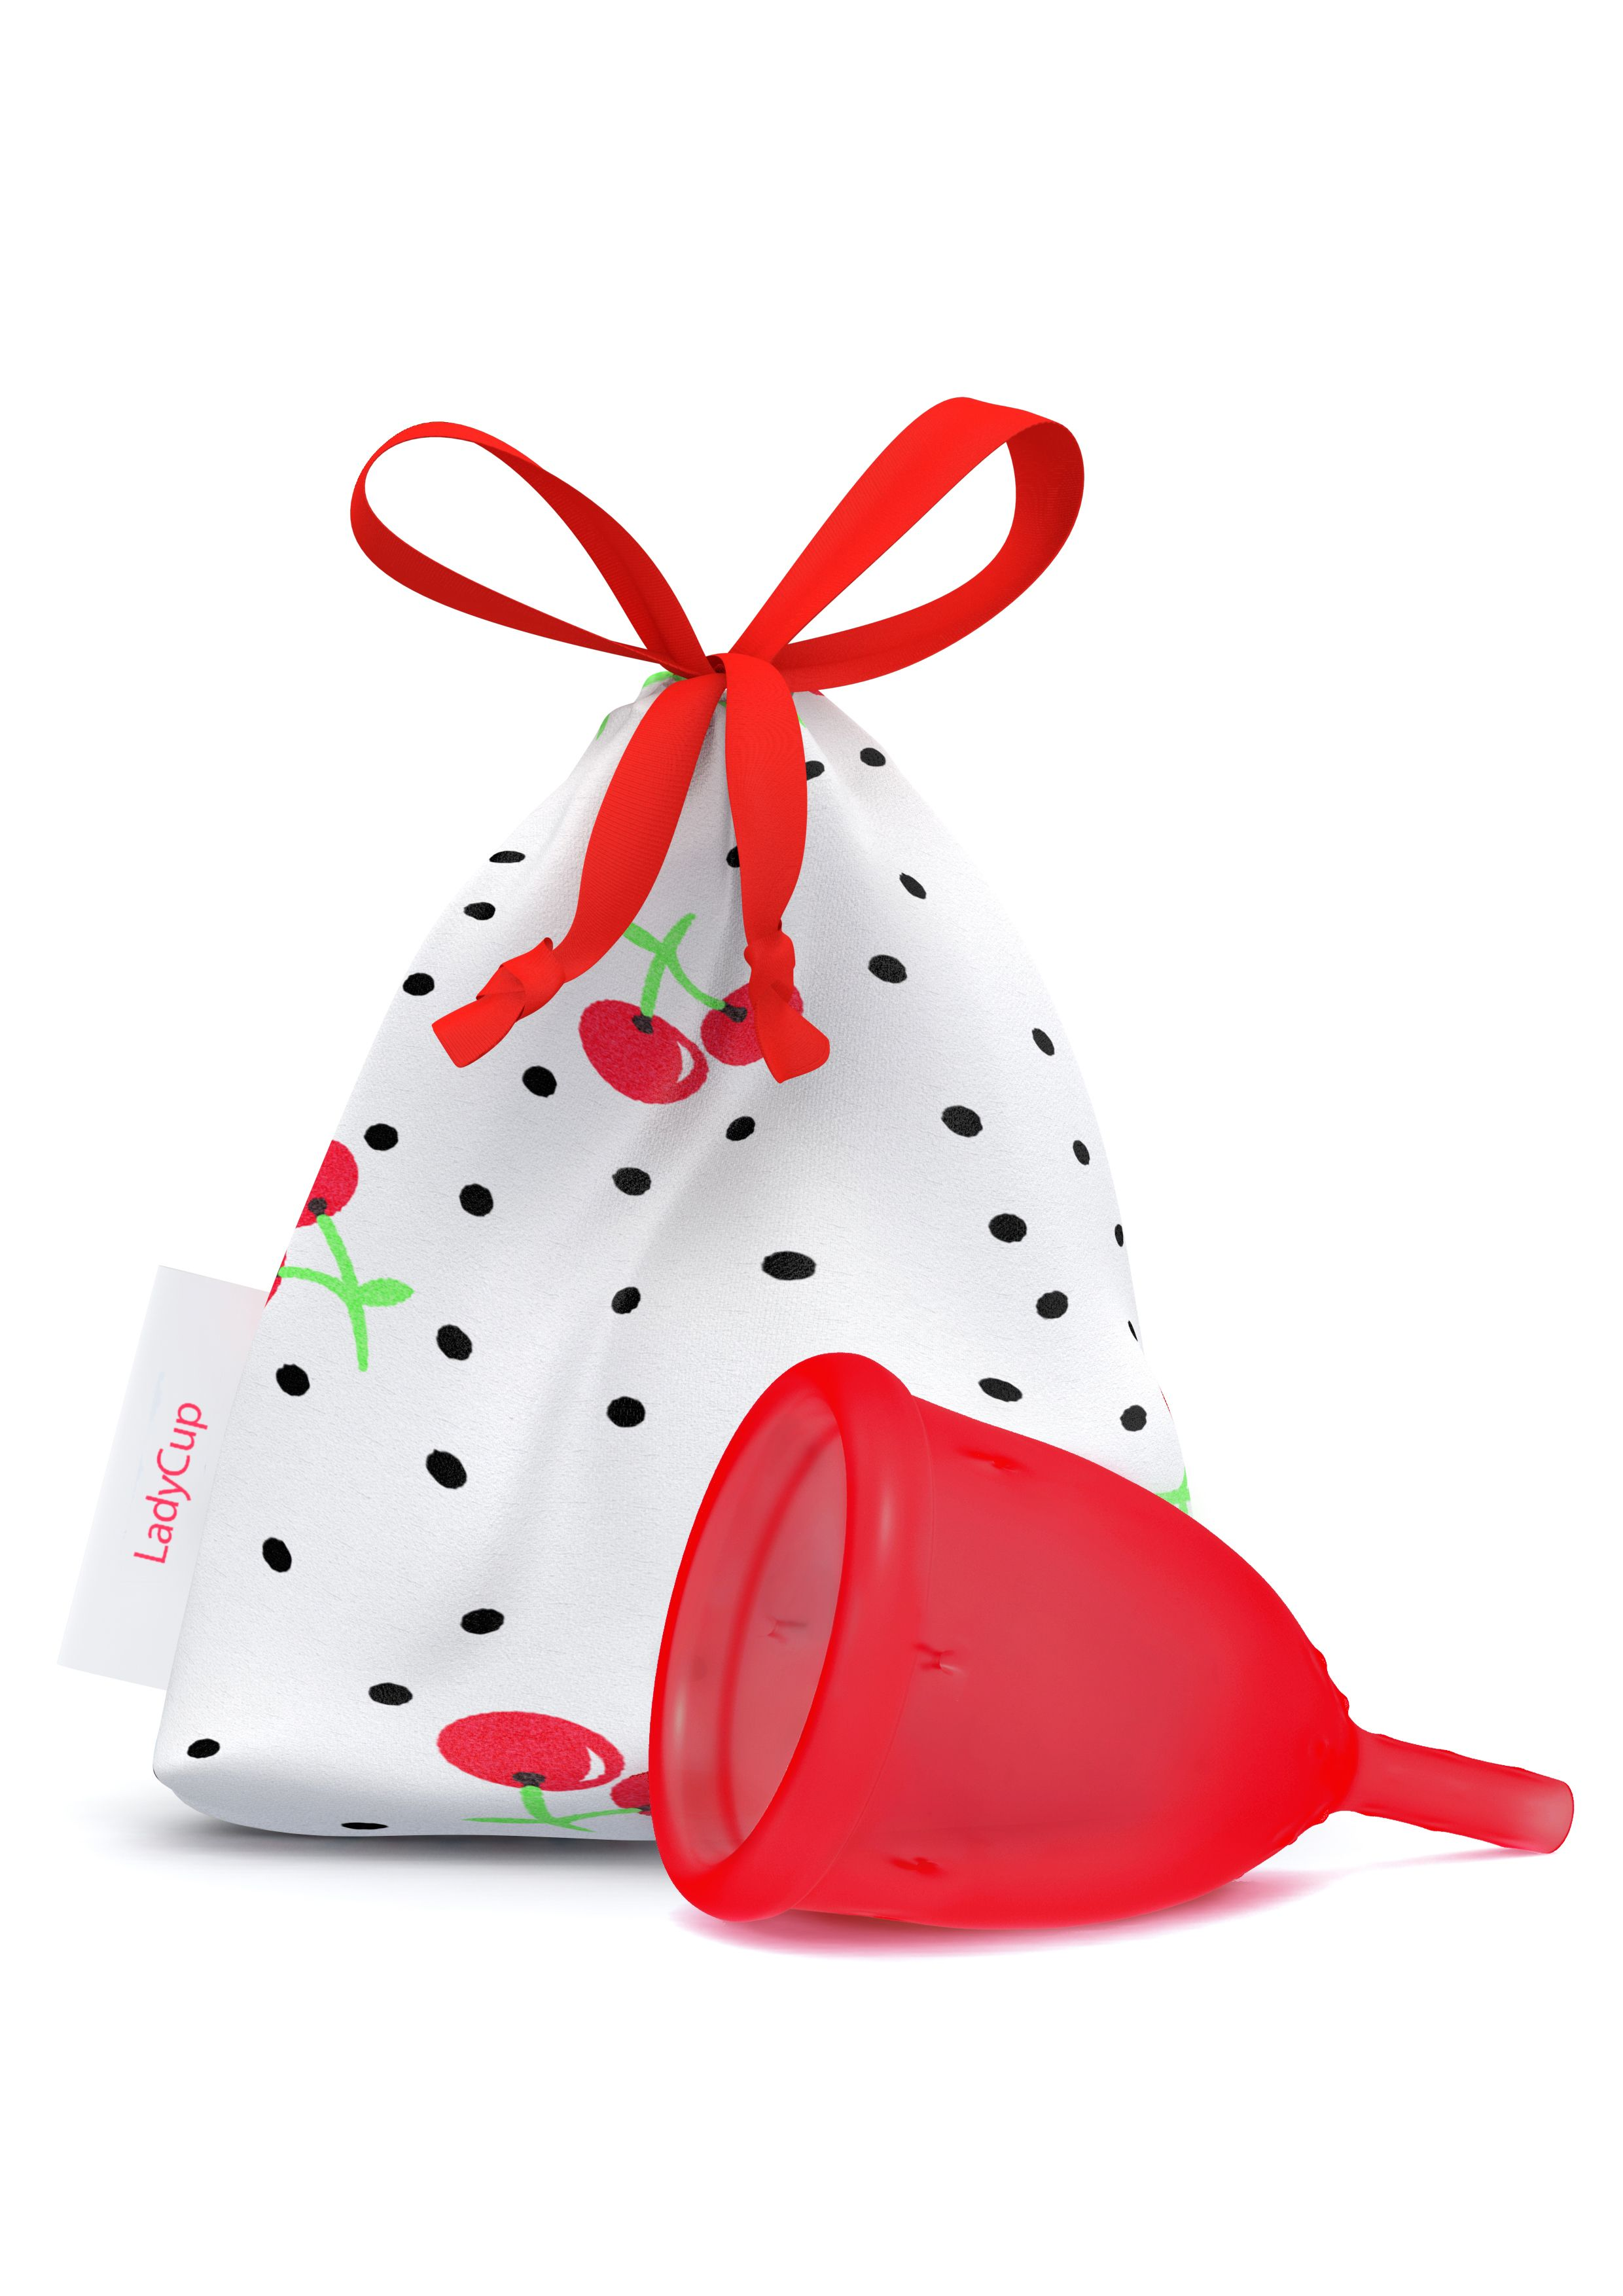 875de98a73 Wild Cherry LadyCup | LadyCup | Menstrual cup, Menstrual cycle a Fruit